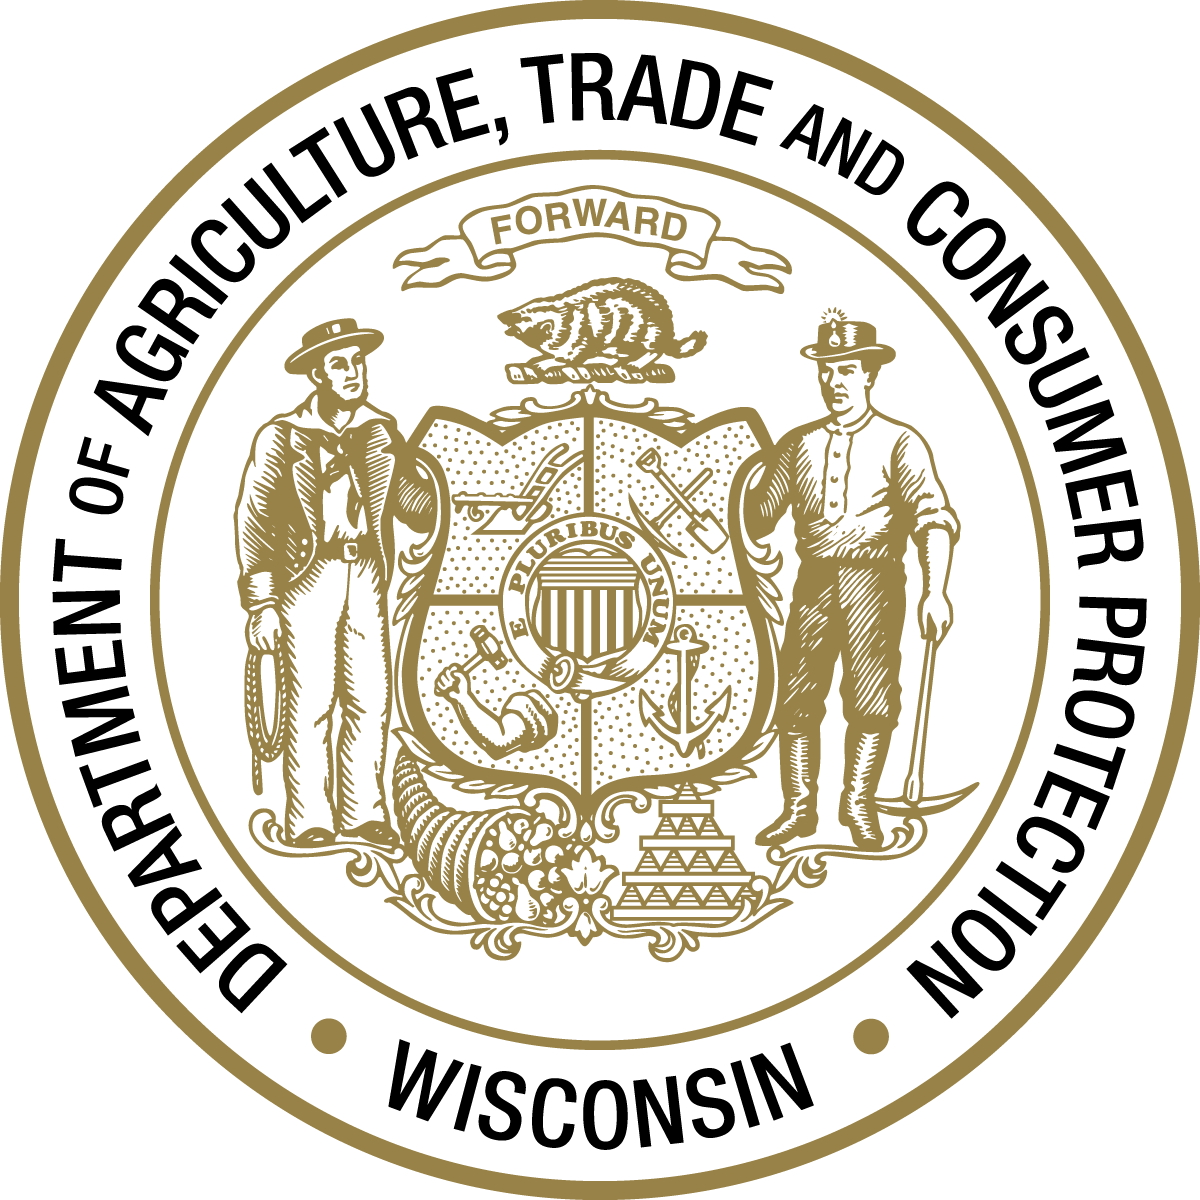 Wisconsin Specialty Crop Block Grants Awarded to 19 Projects